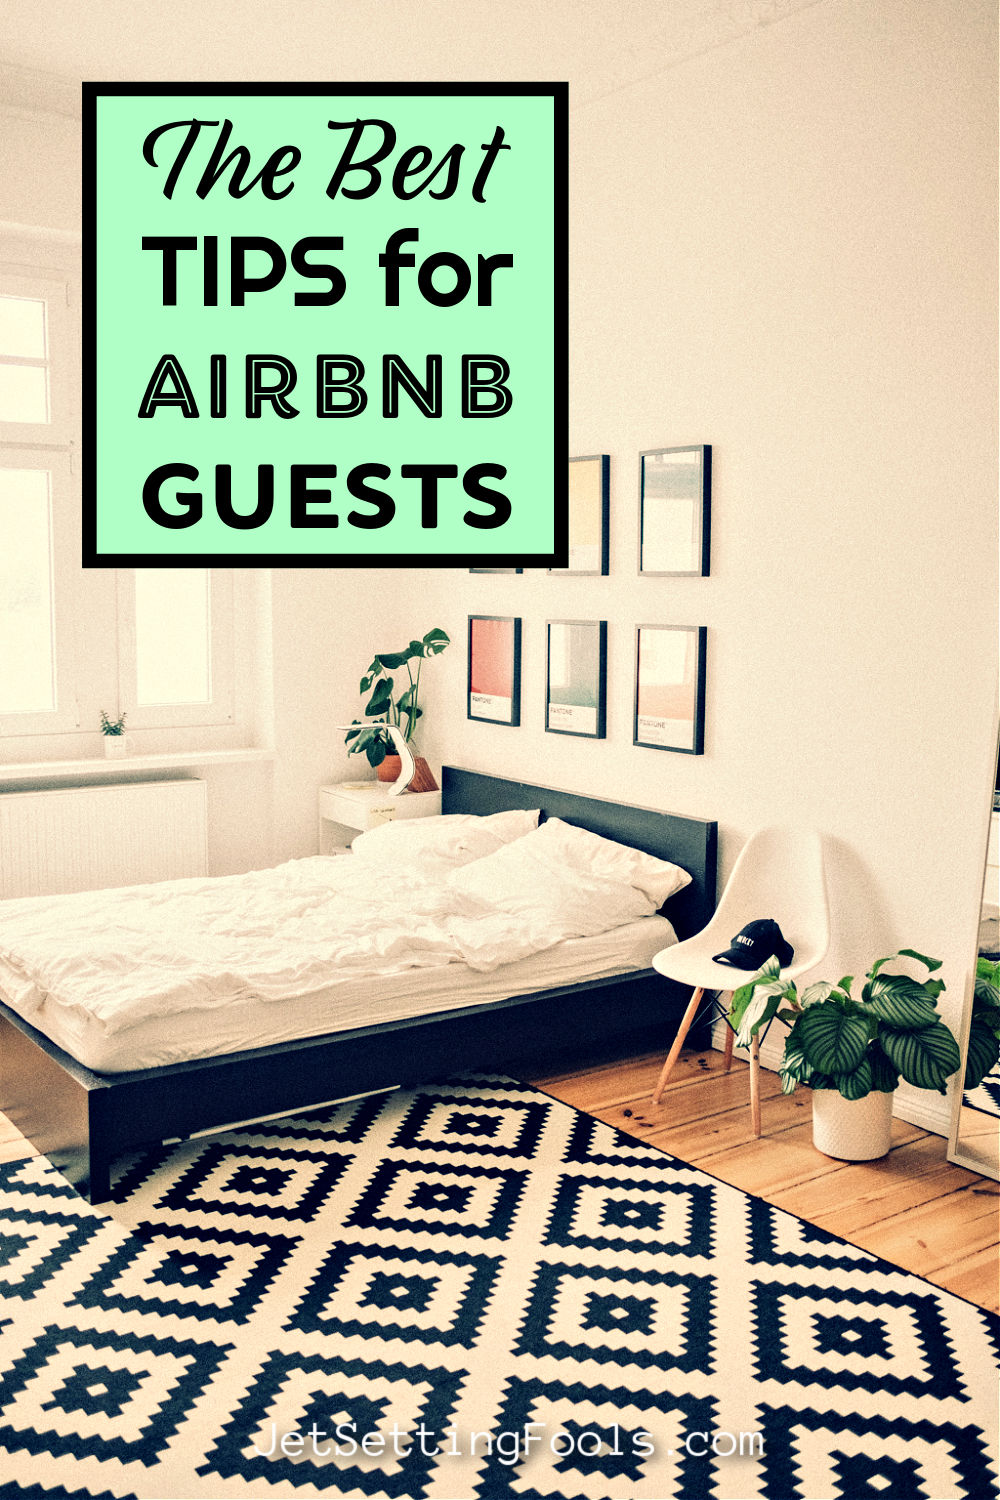 The Best Tips for Airbnb Guests by JetSettingFools.com